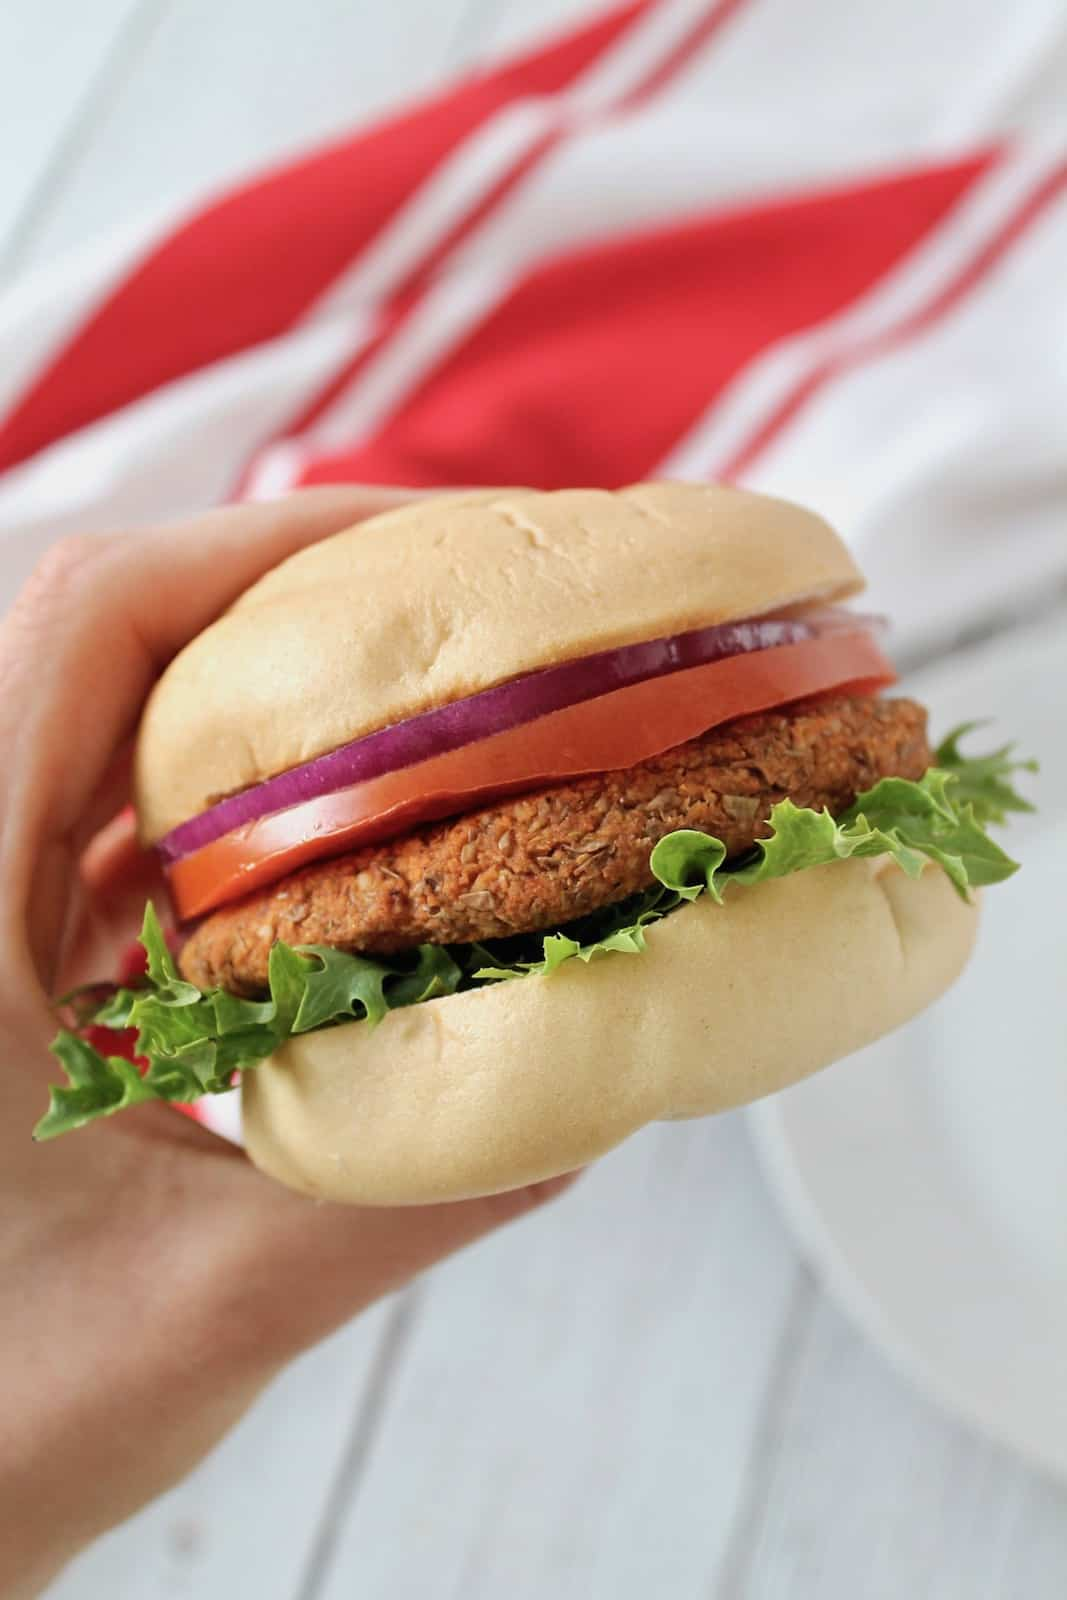 Close up of hand holding a lentil burger with lettuce, tomato, onion and a bun with a red and white striped dish towel in the background